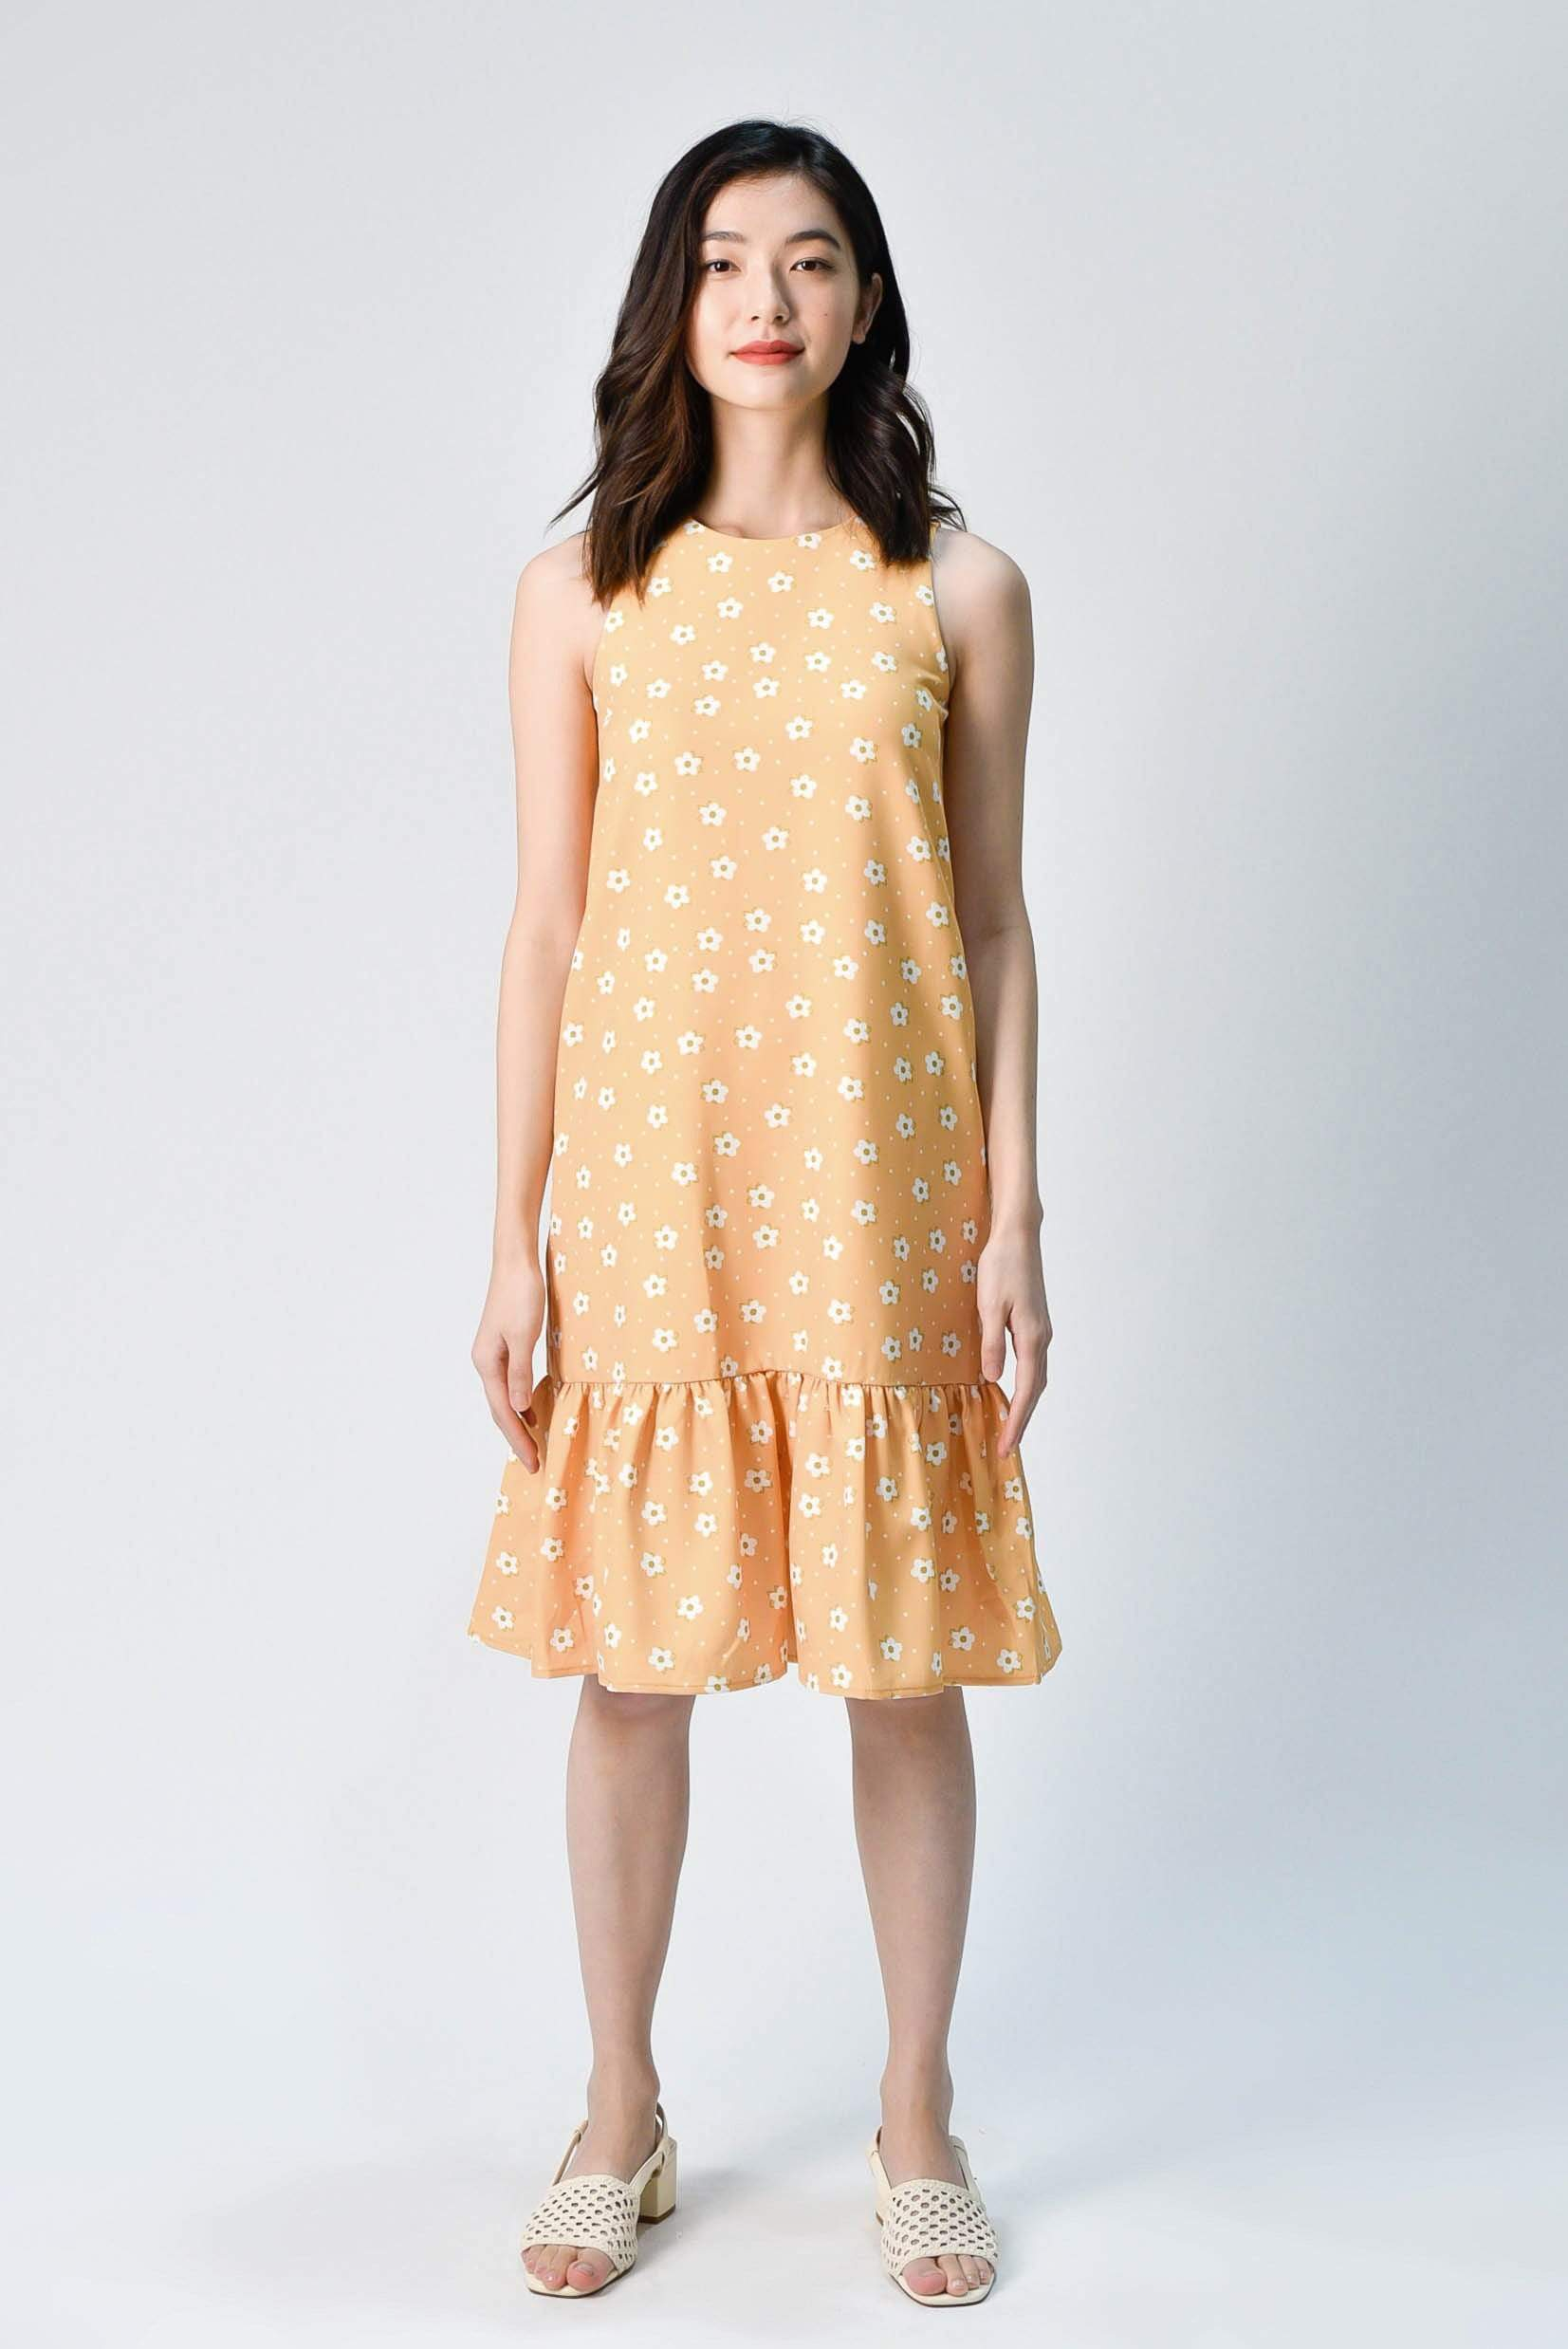 HANA YELLOW FLORAL DROPWAIST DRESS